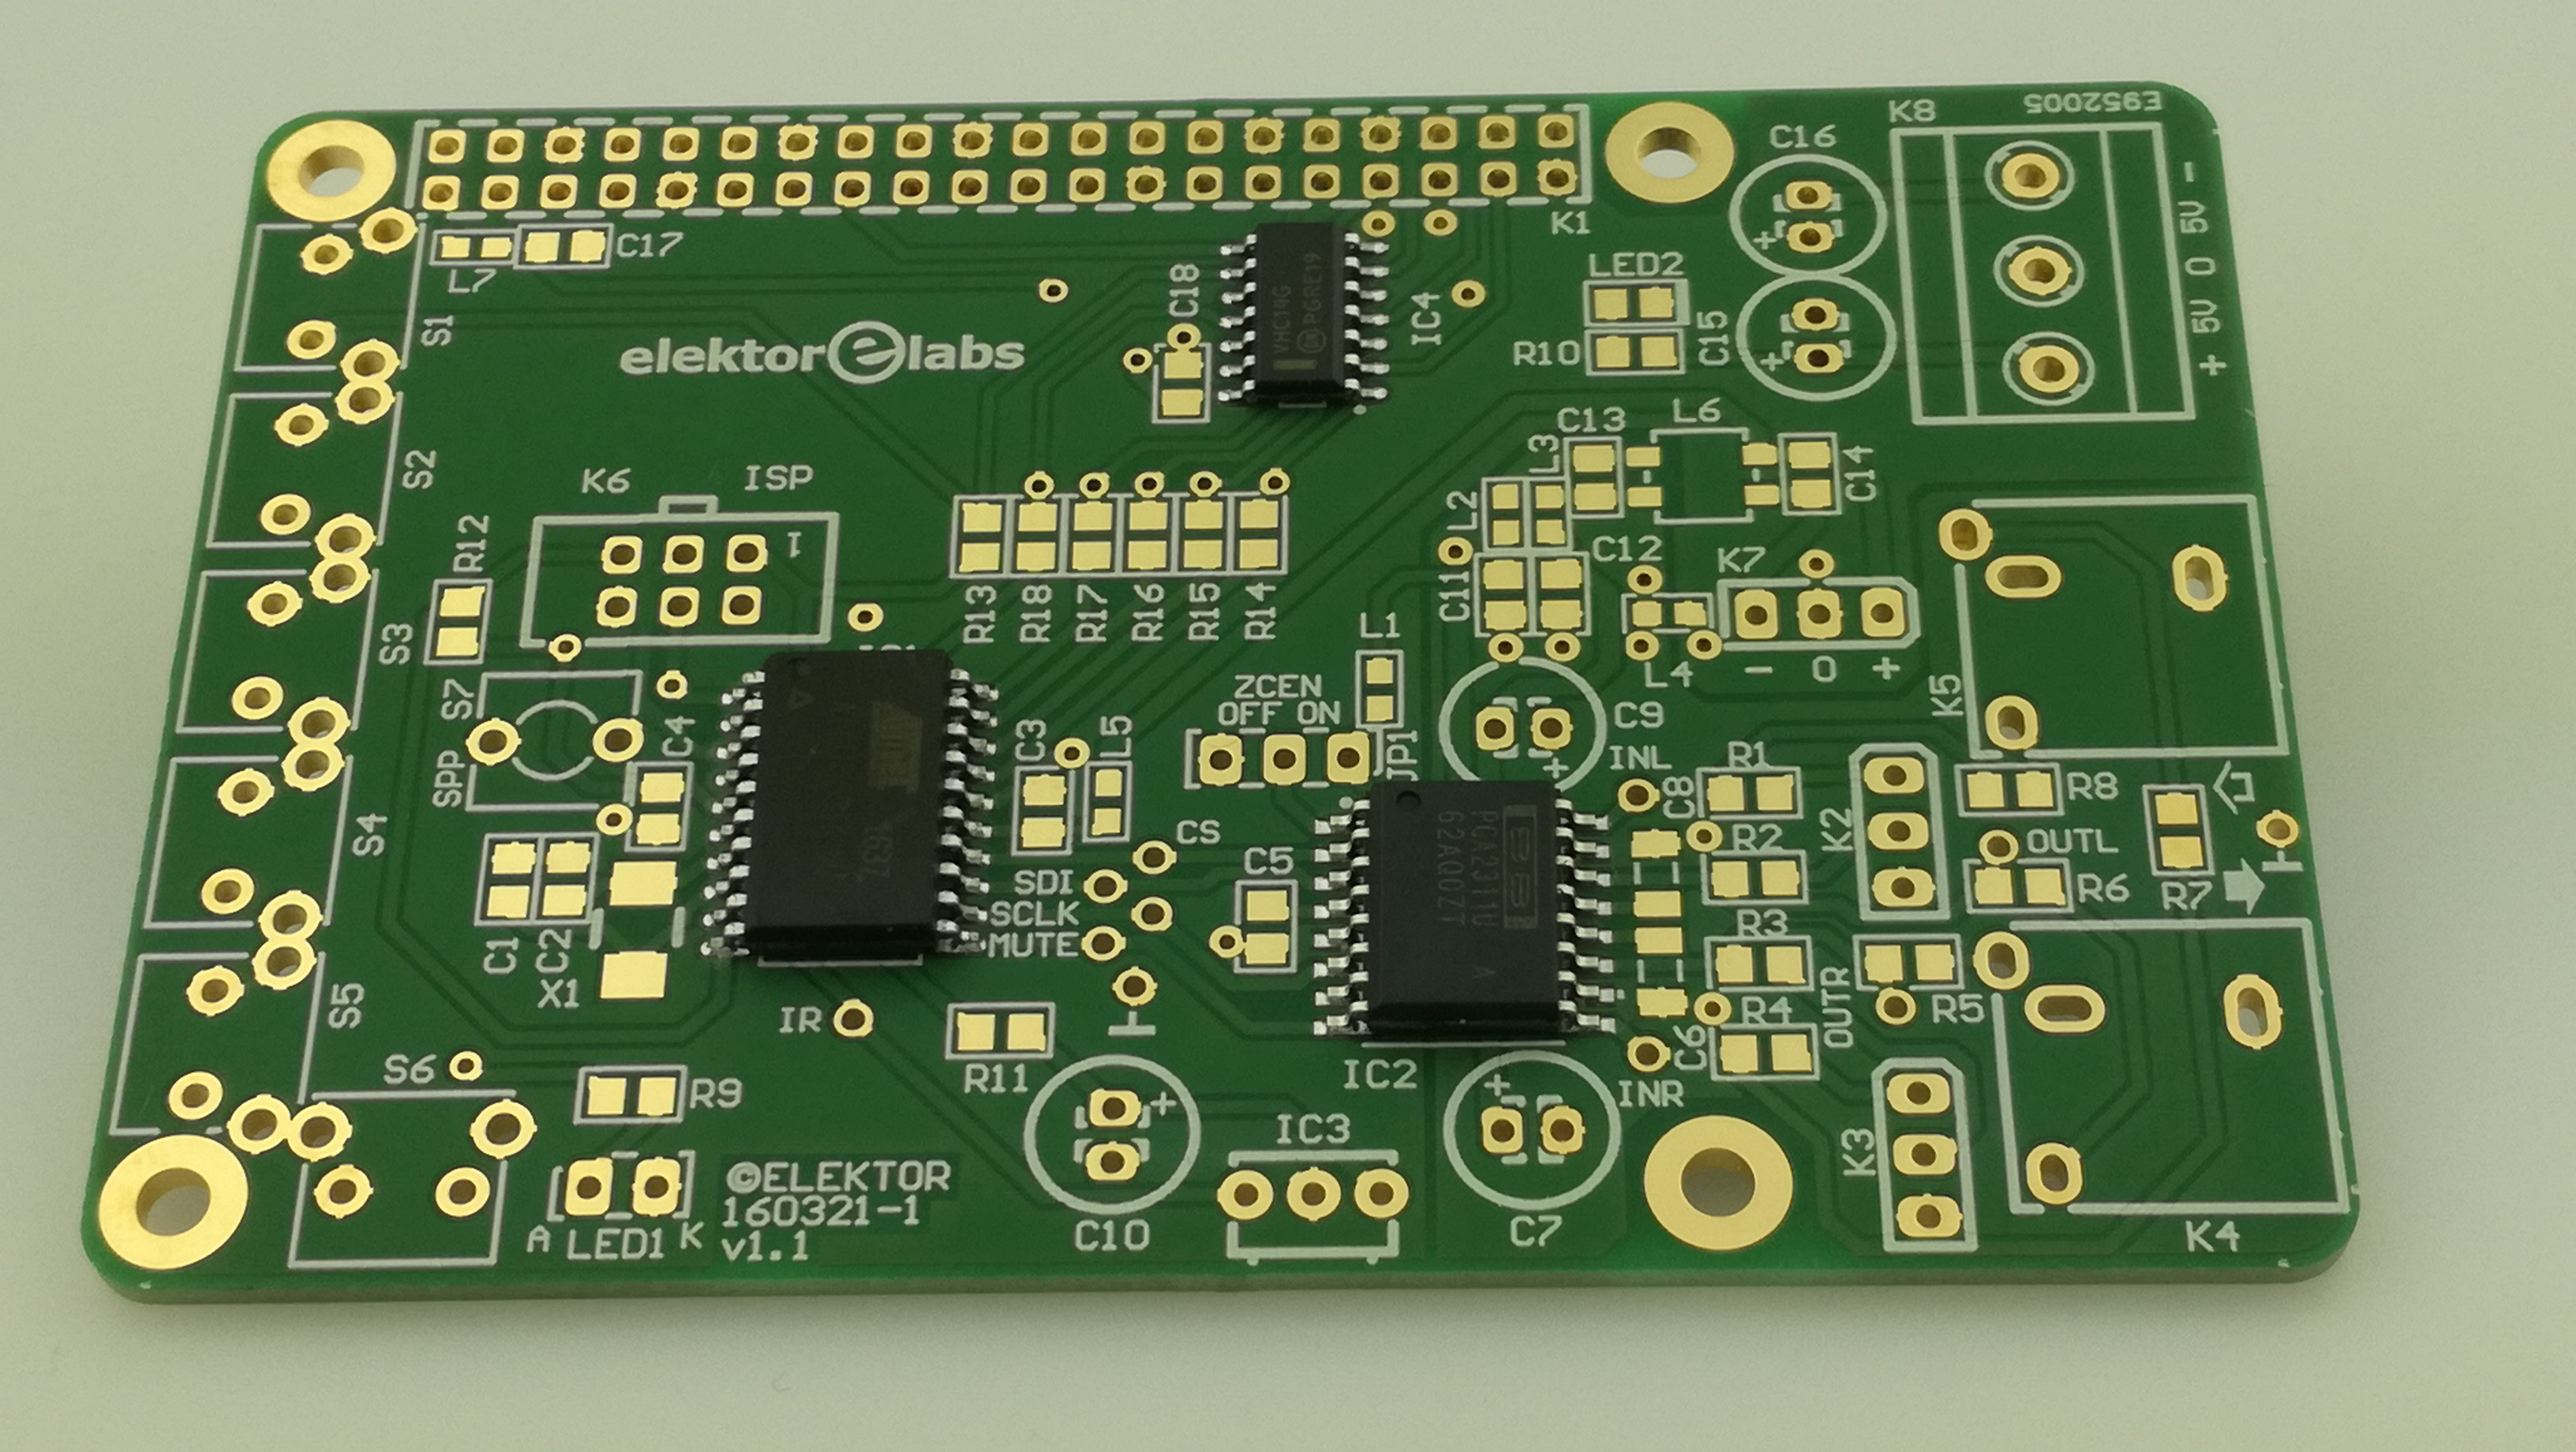 Volume Control for RPi Audio DAC - PCB with IC1,2,4 mounted (160321-1)